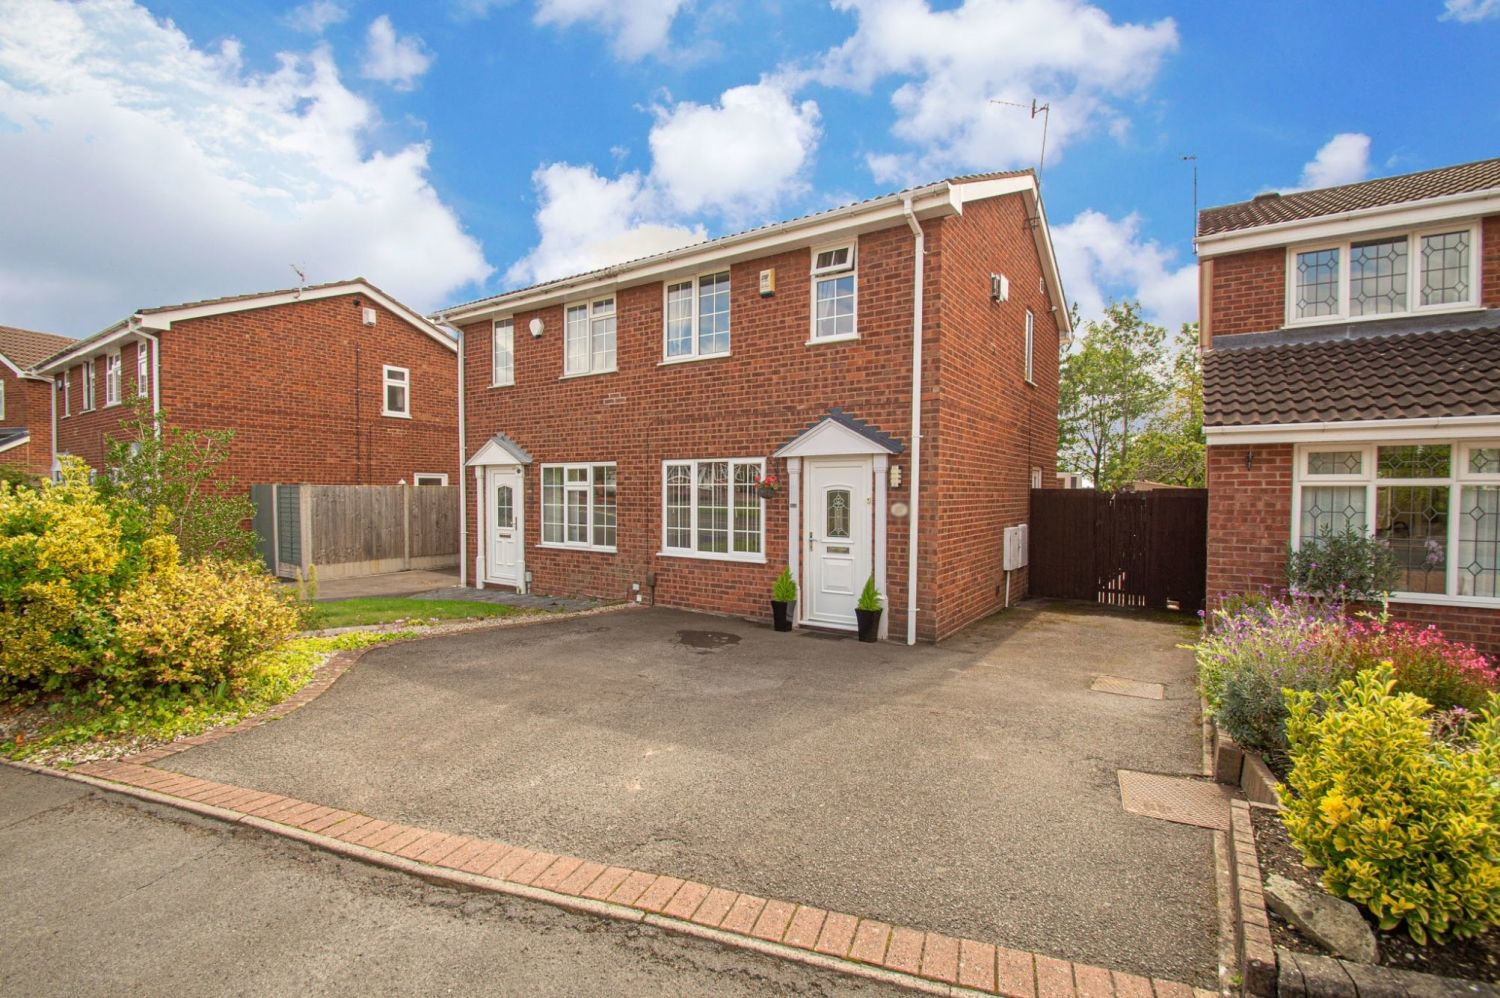 2 bed semi-detached for sale in Brayford Avenue, Brierley Hill 1